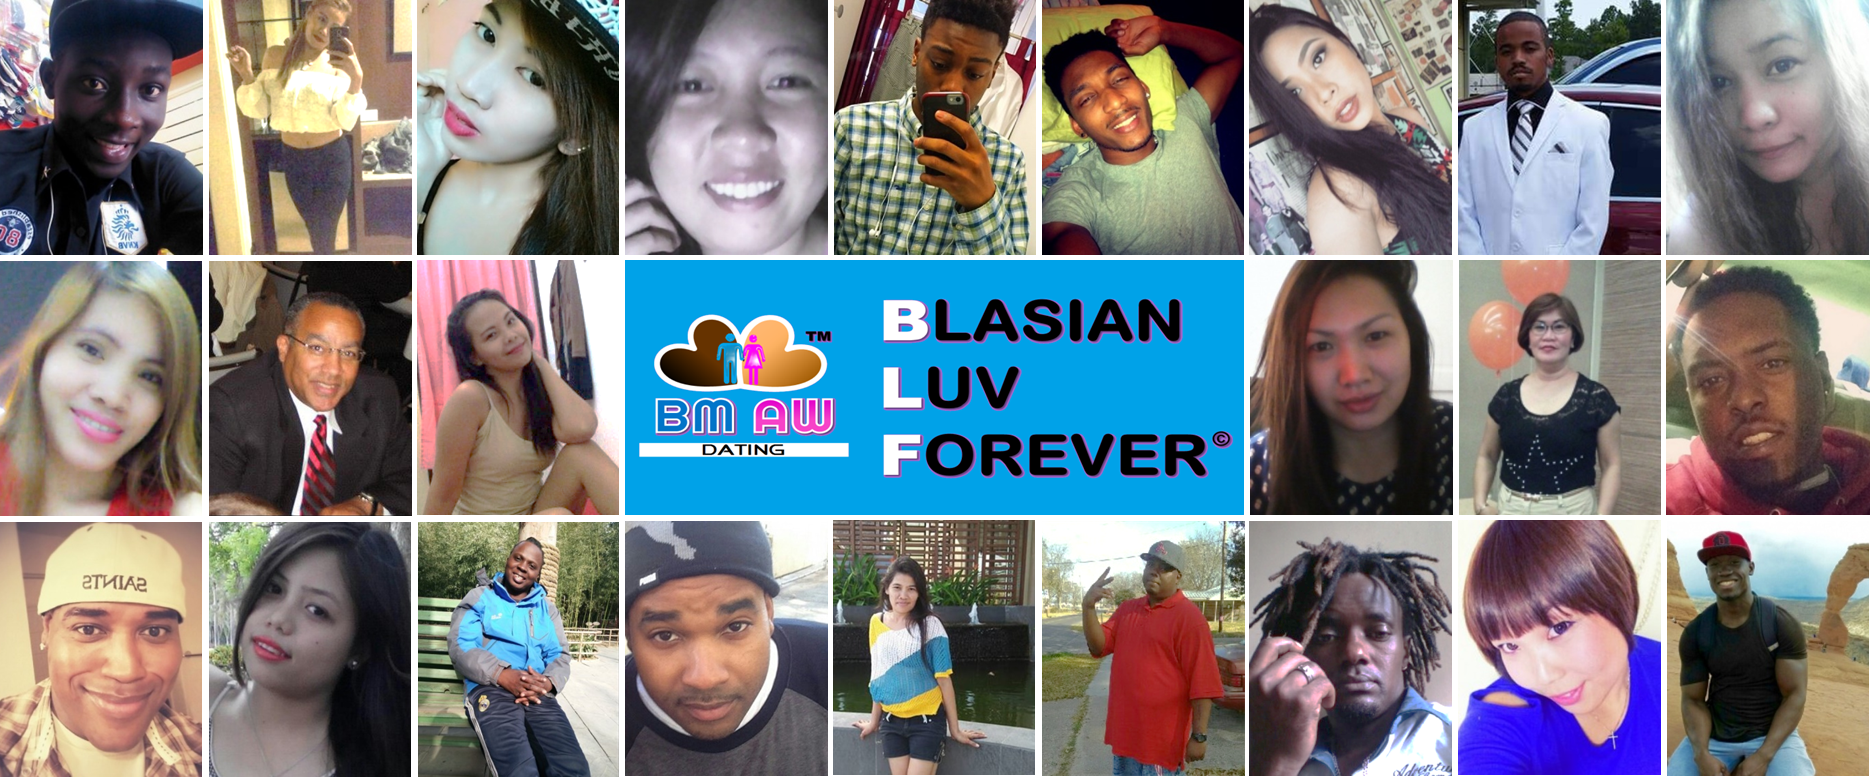 brumley black women dating site Date asian men & black women seeking blasian relationships blasian love  forever™ is the #1 ambw dating website on the planet ambw dating: quality.